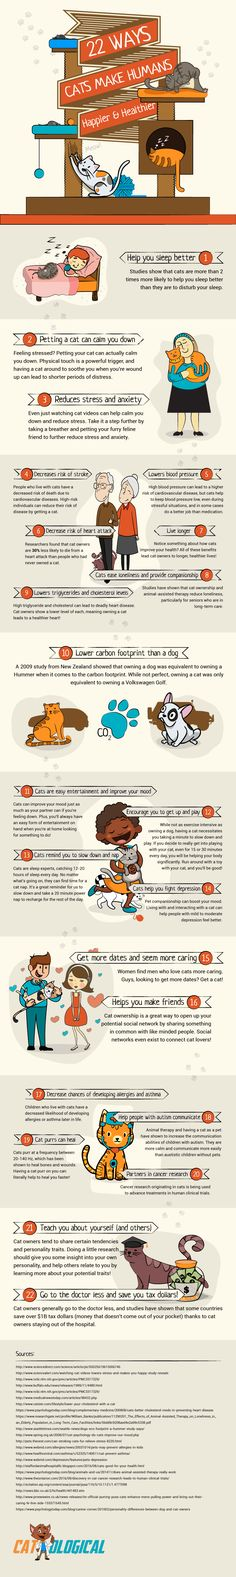 22 Ways Cats Make People Happier And Healthier | Animal Bliss